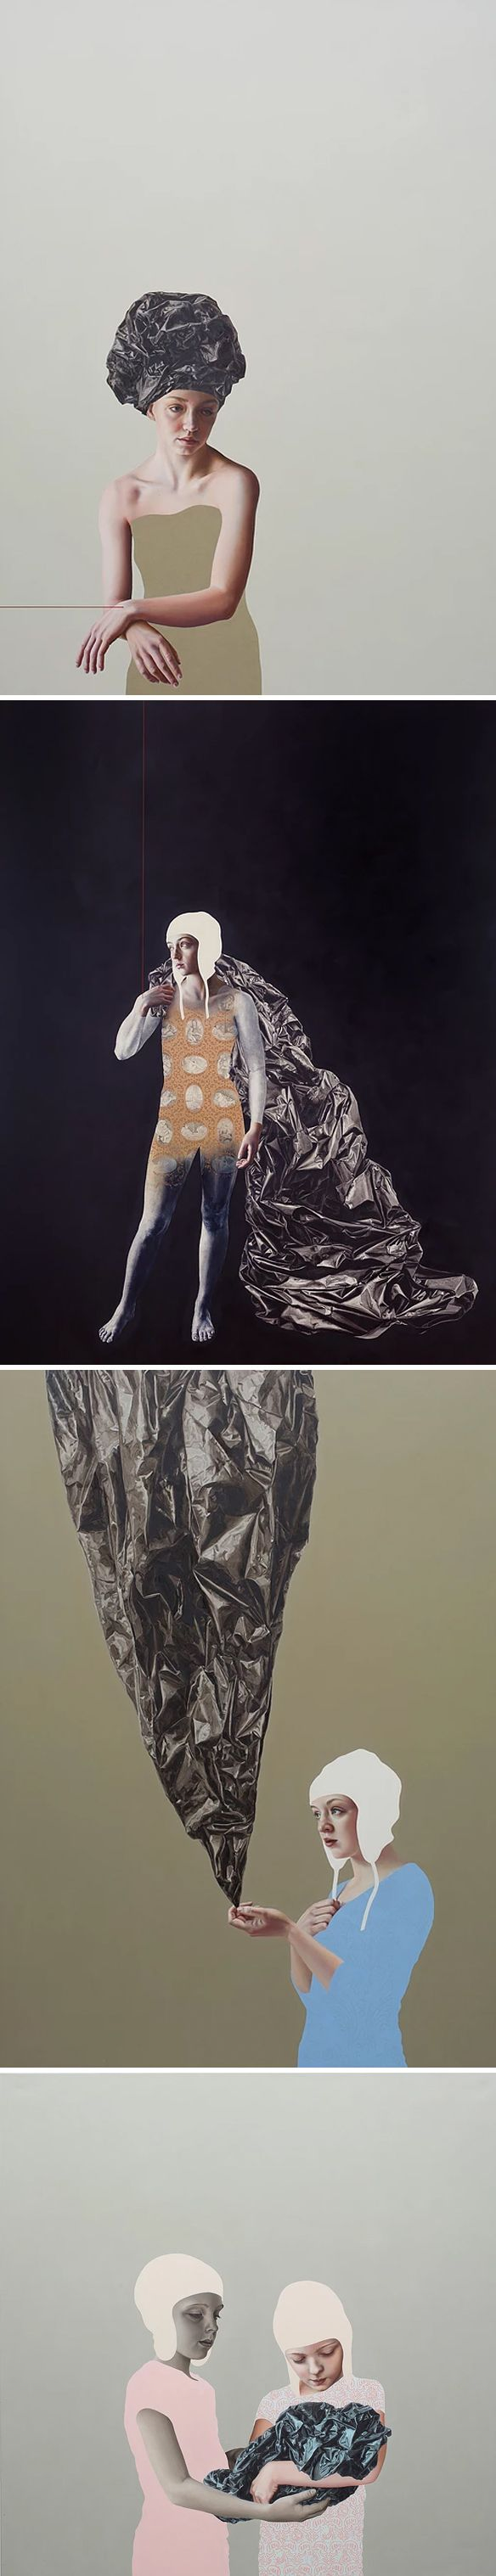 paintings by pippa young